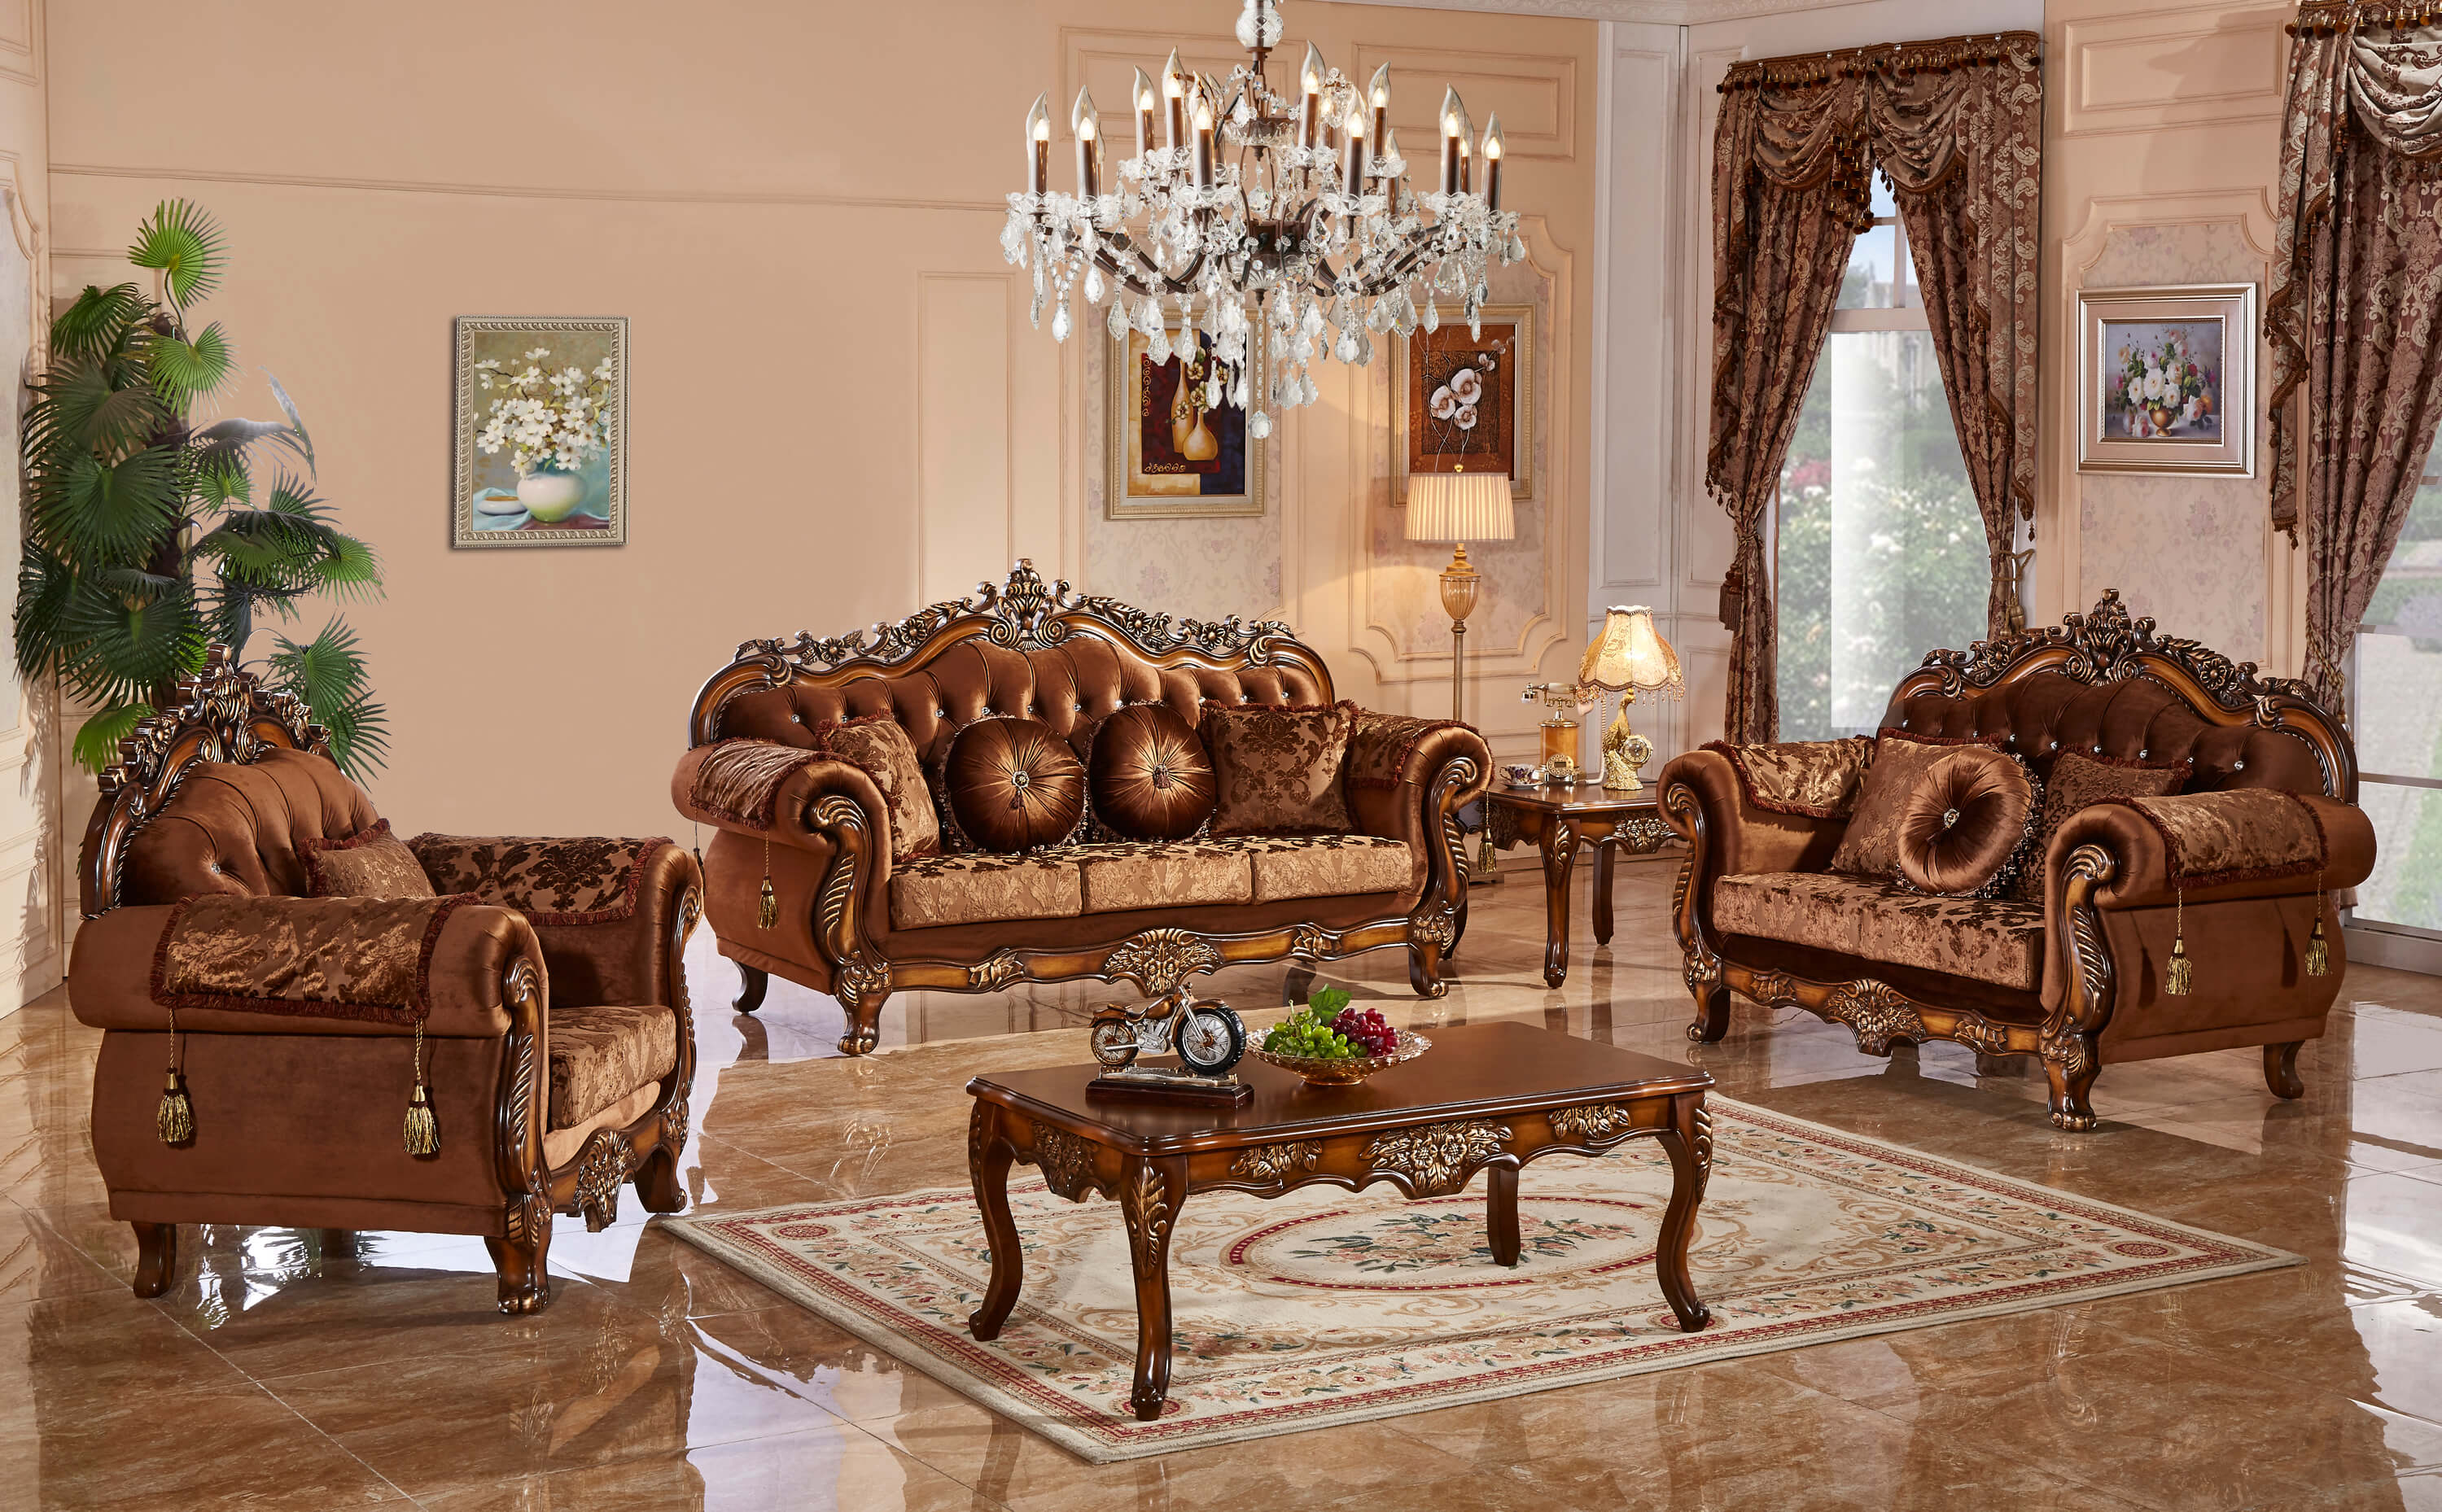 meridian furniture living room collection |  Living room sets in fabric TNNBXGX